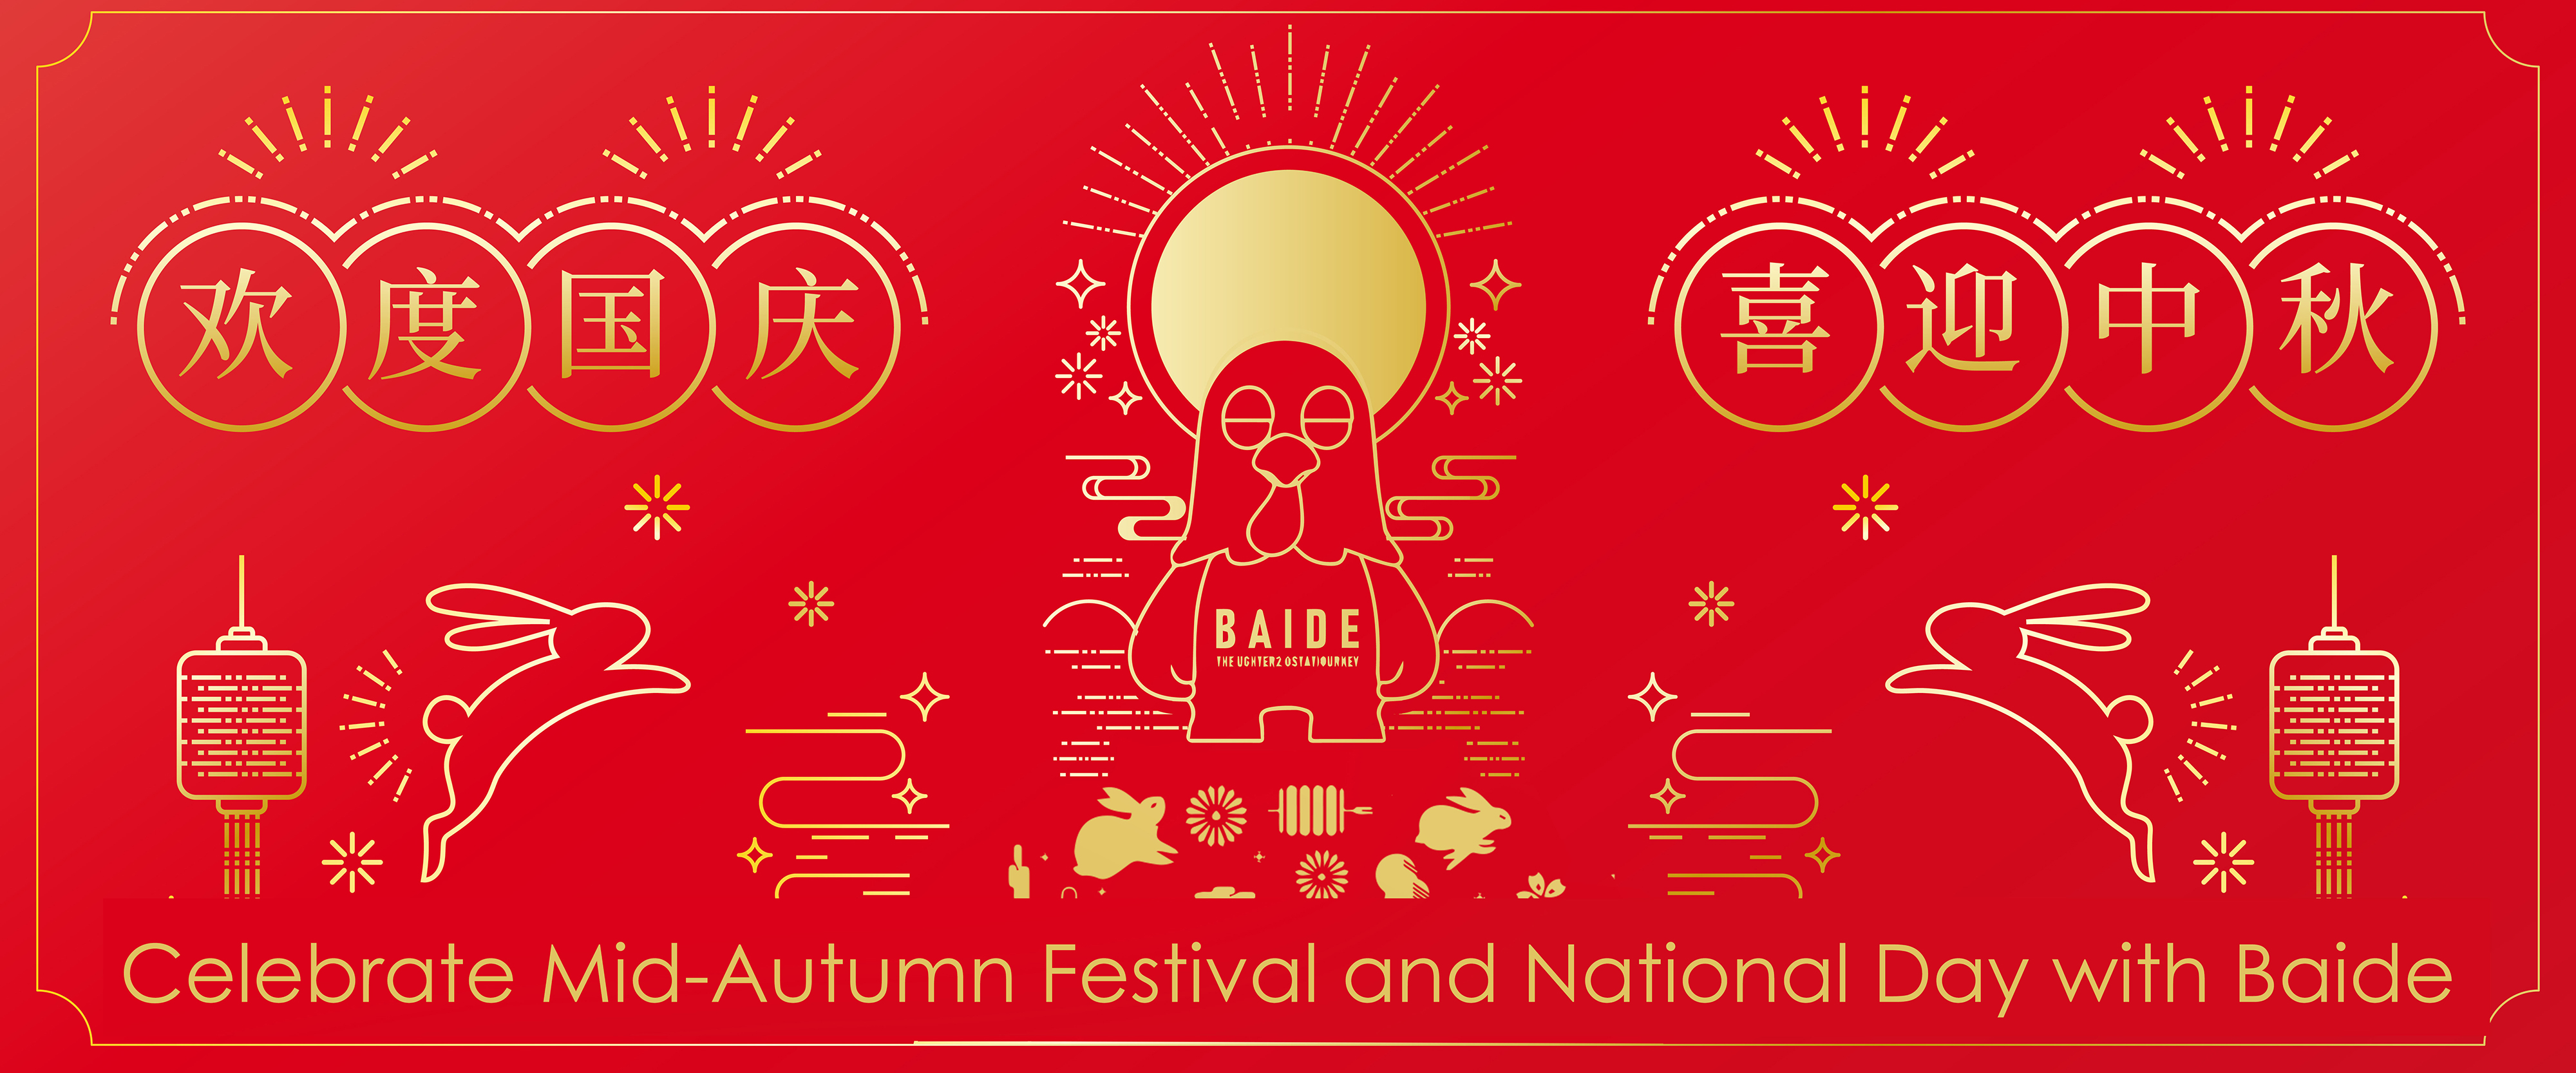 Celebrate Mid-Autumn Festival and National Day with Baide